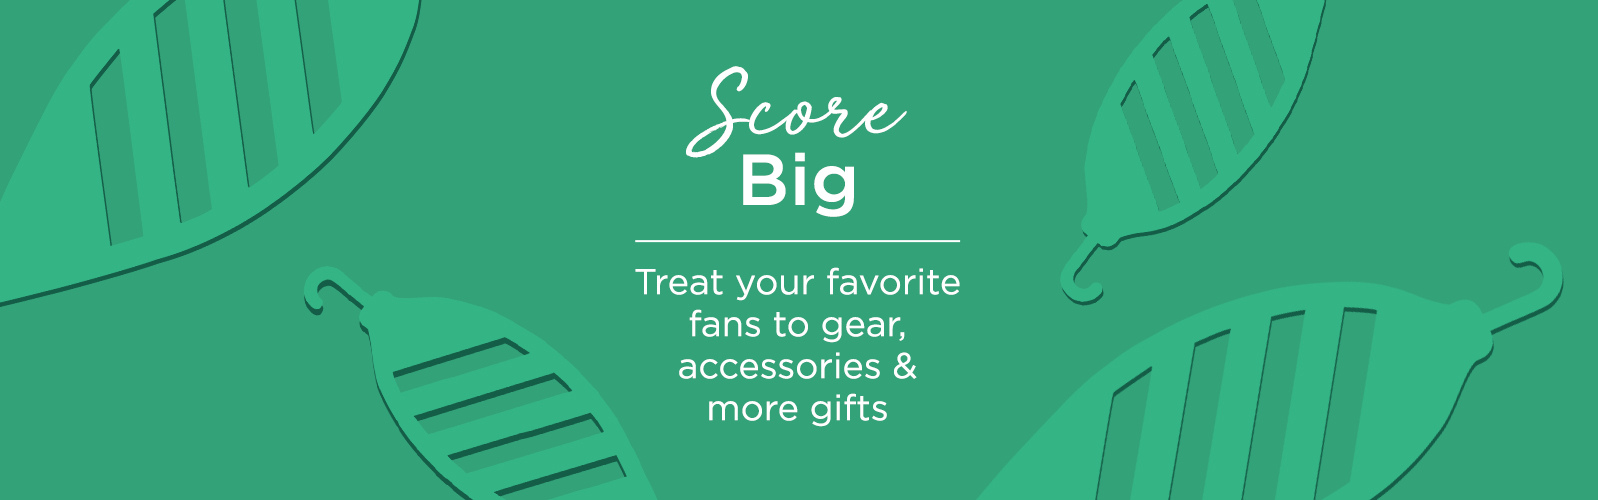 Score Big.  Treat your favorite fans to gear, accessories & more gifts.